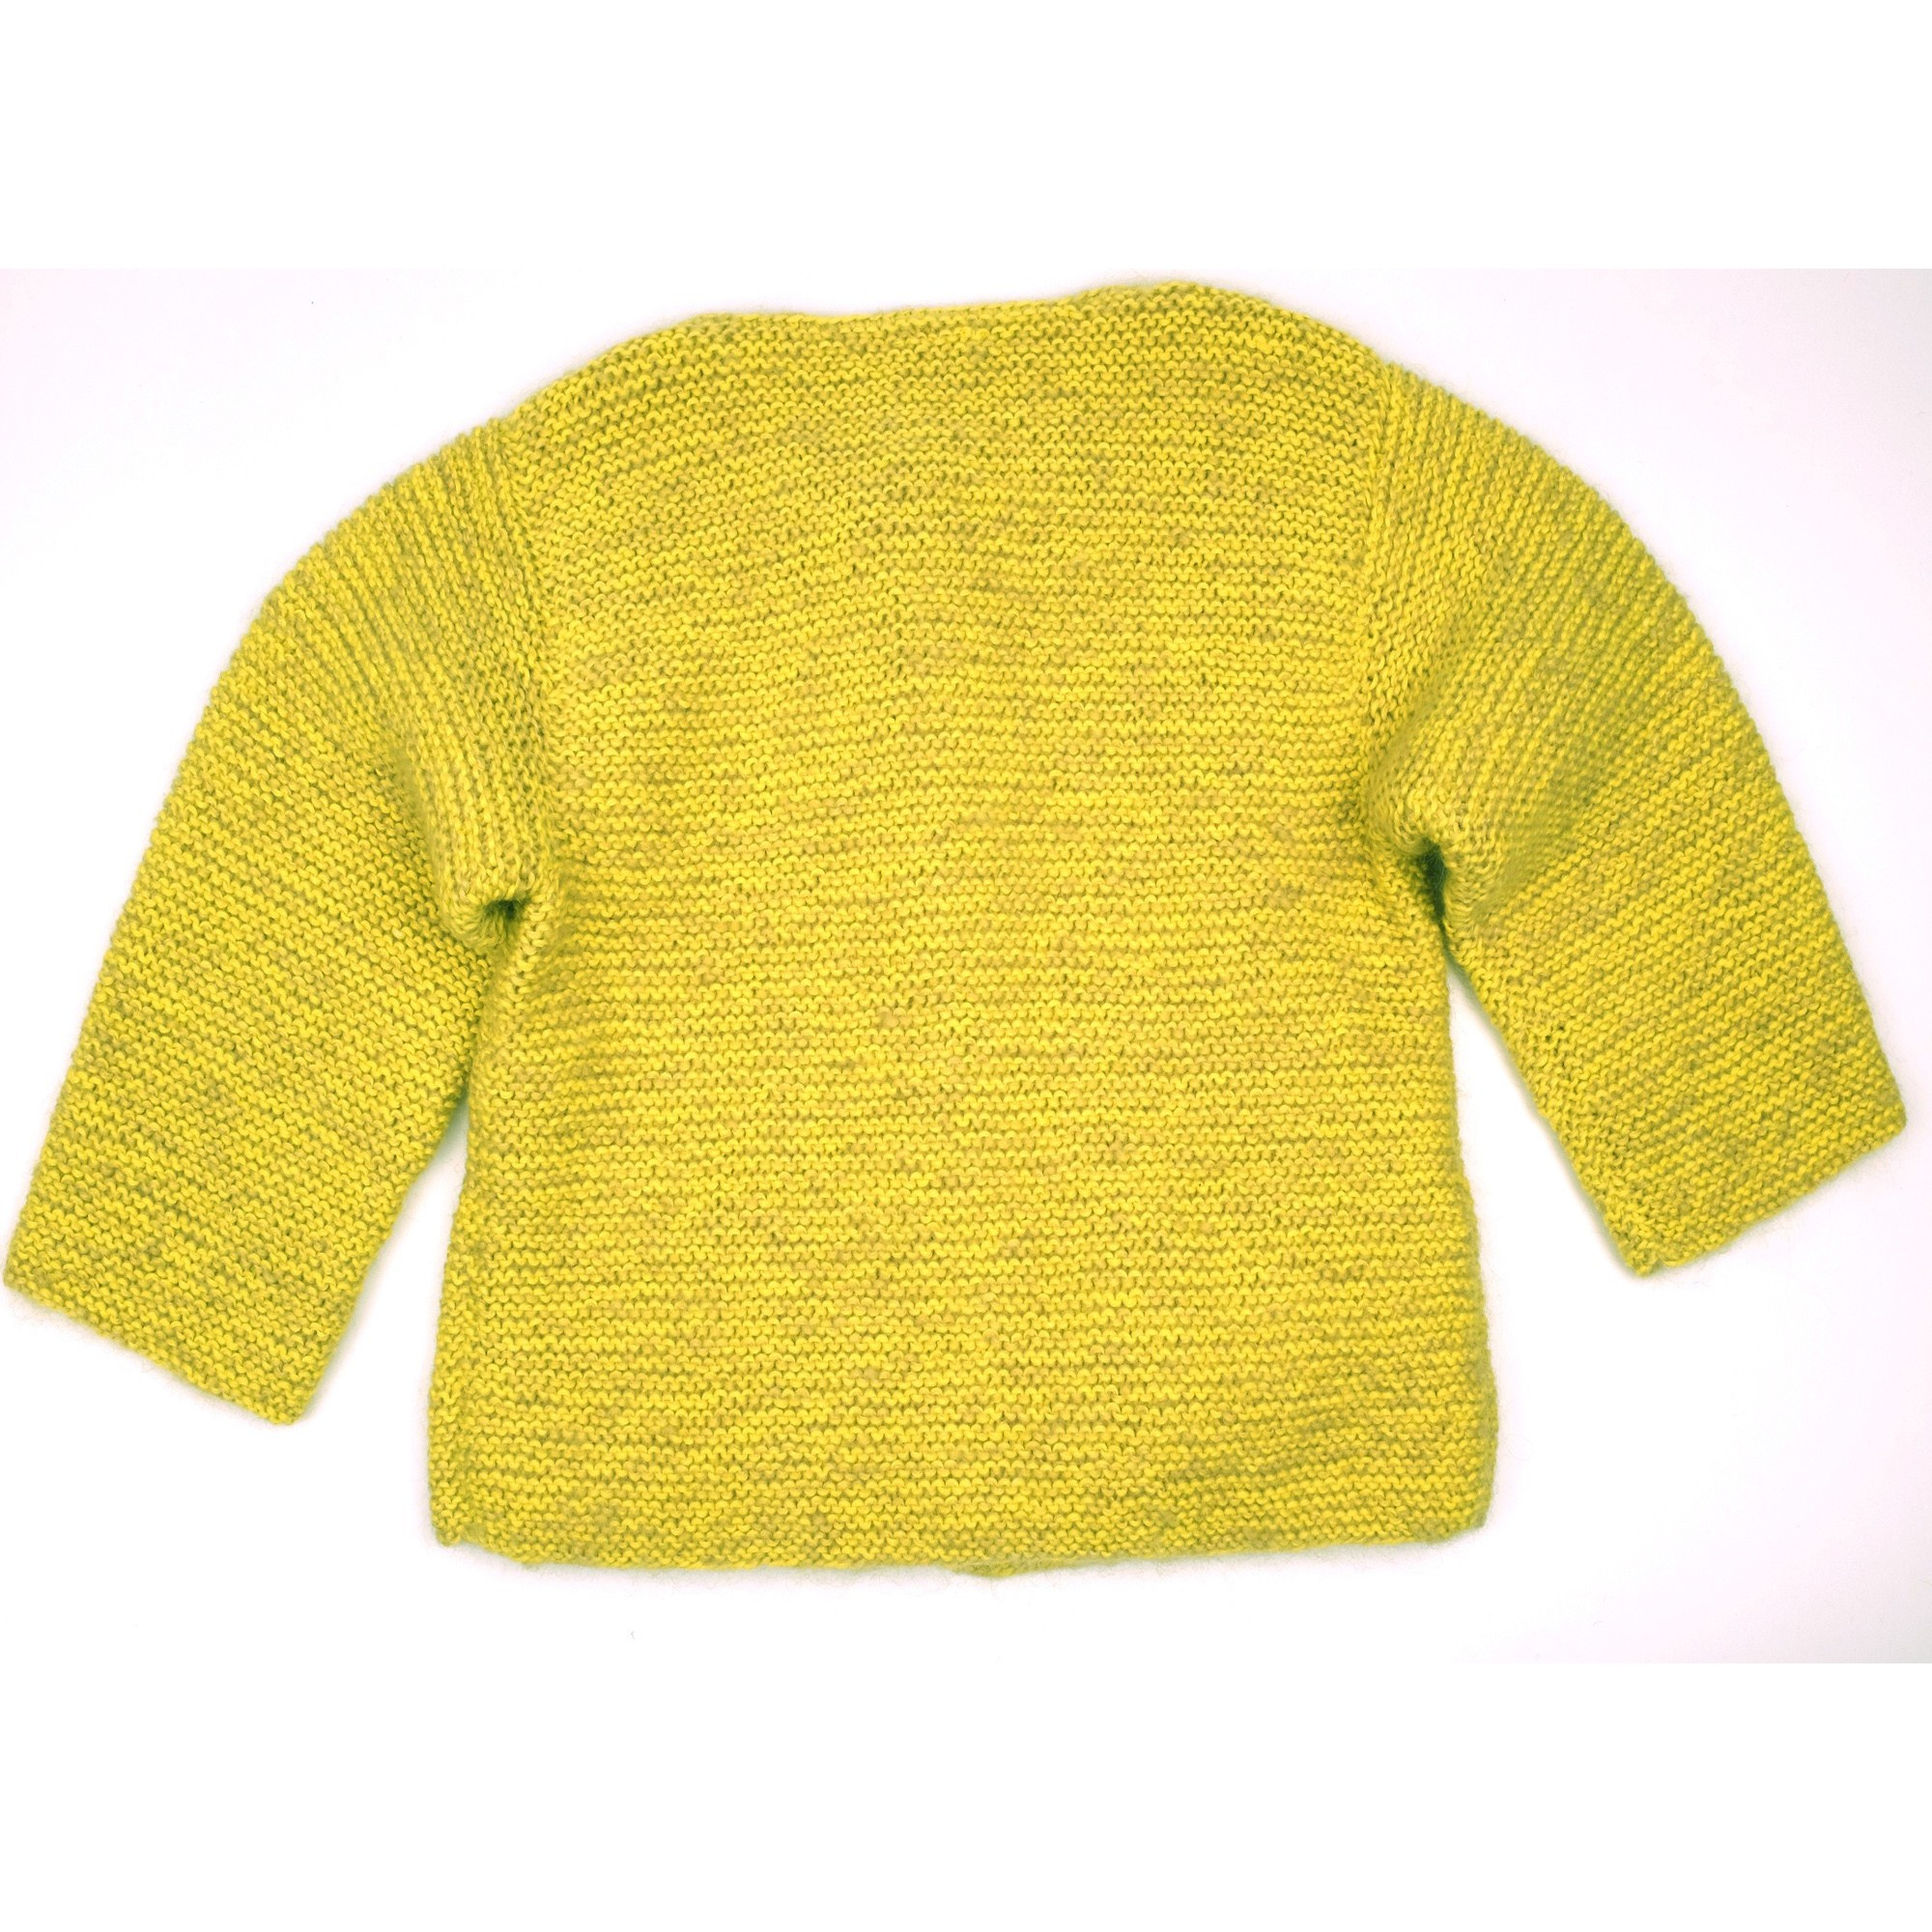 Marie-Jeanne cardigan flecked lime green color for baby back